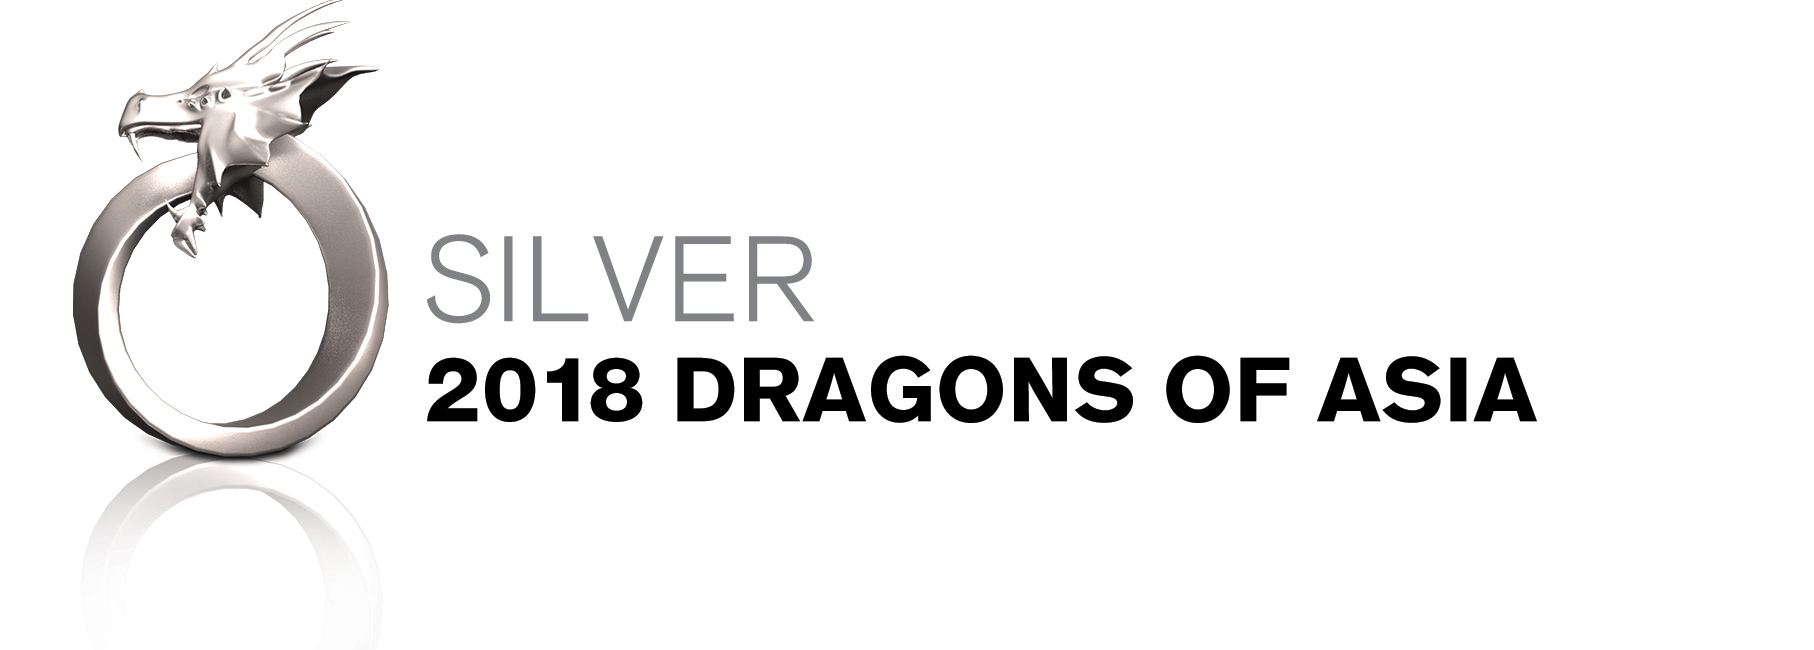 MullenLowe Shanghai Wins PMAA Silver Dragon Award For The Best Small Budget Campaign